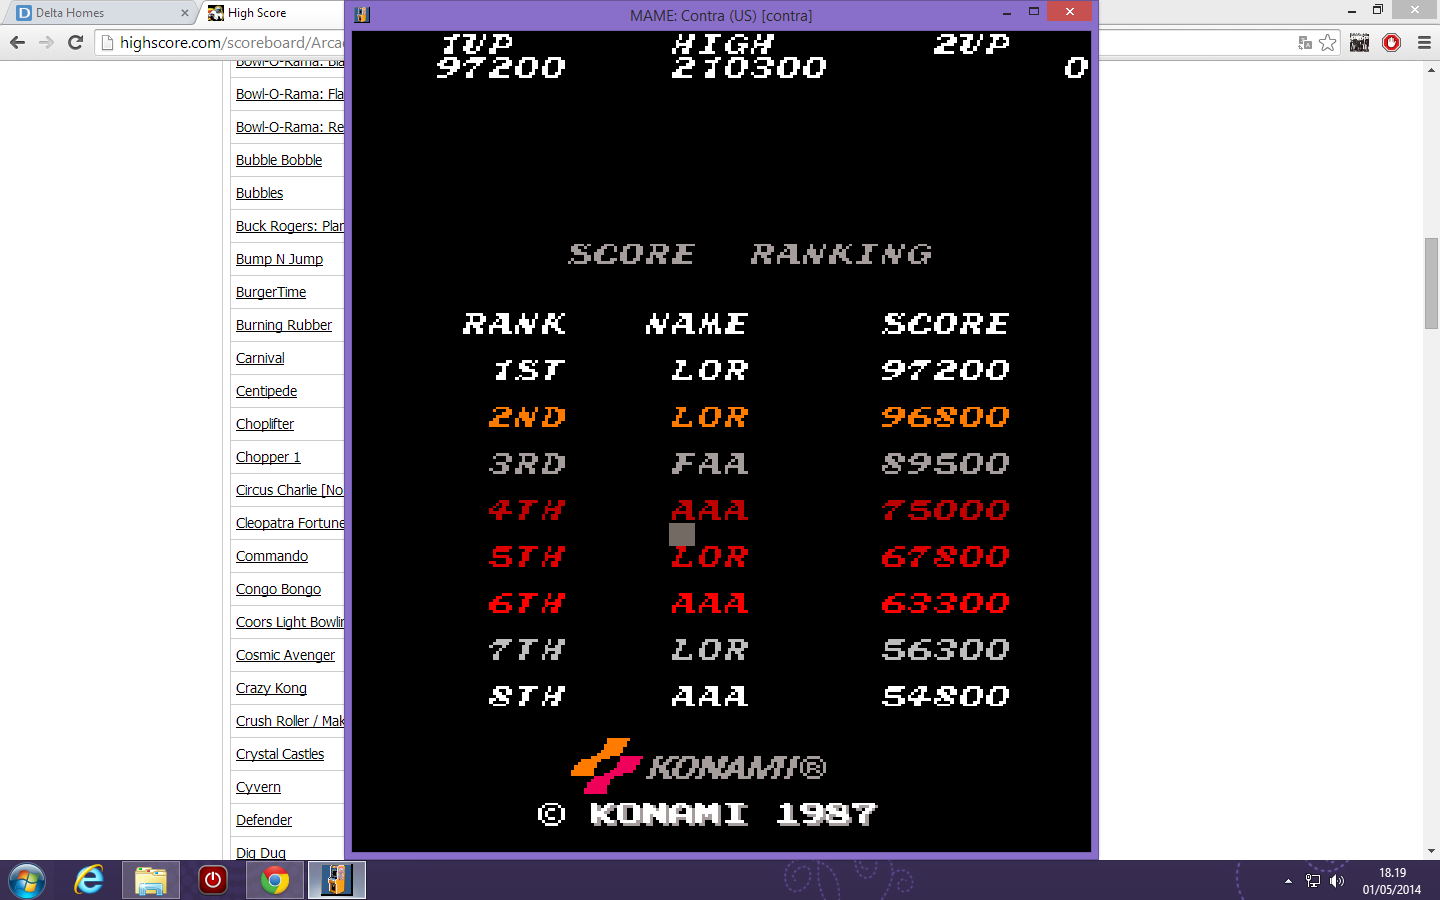 Contra [contra] 97,200 points